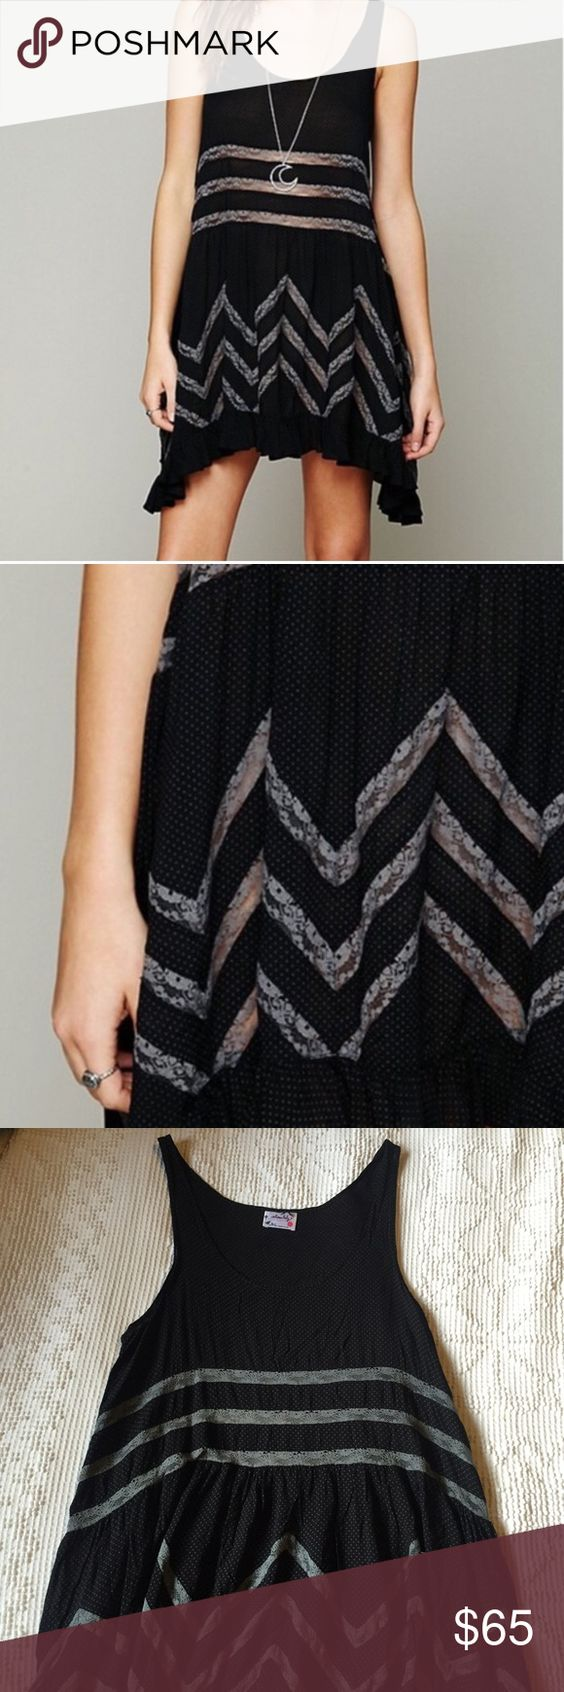 Free People Voile and Lace Trapeze Slip Dress Voile and Lace Trapeze Slip Dress in Black. In excellent condition, worn once. Grey lace detailing. Feel free to make me an offer! Free People Dresses